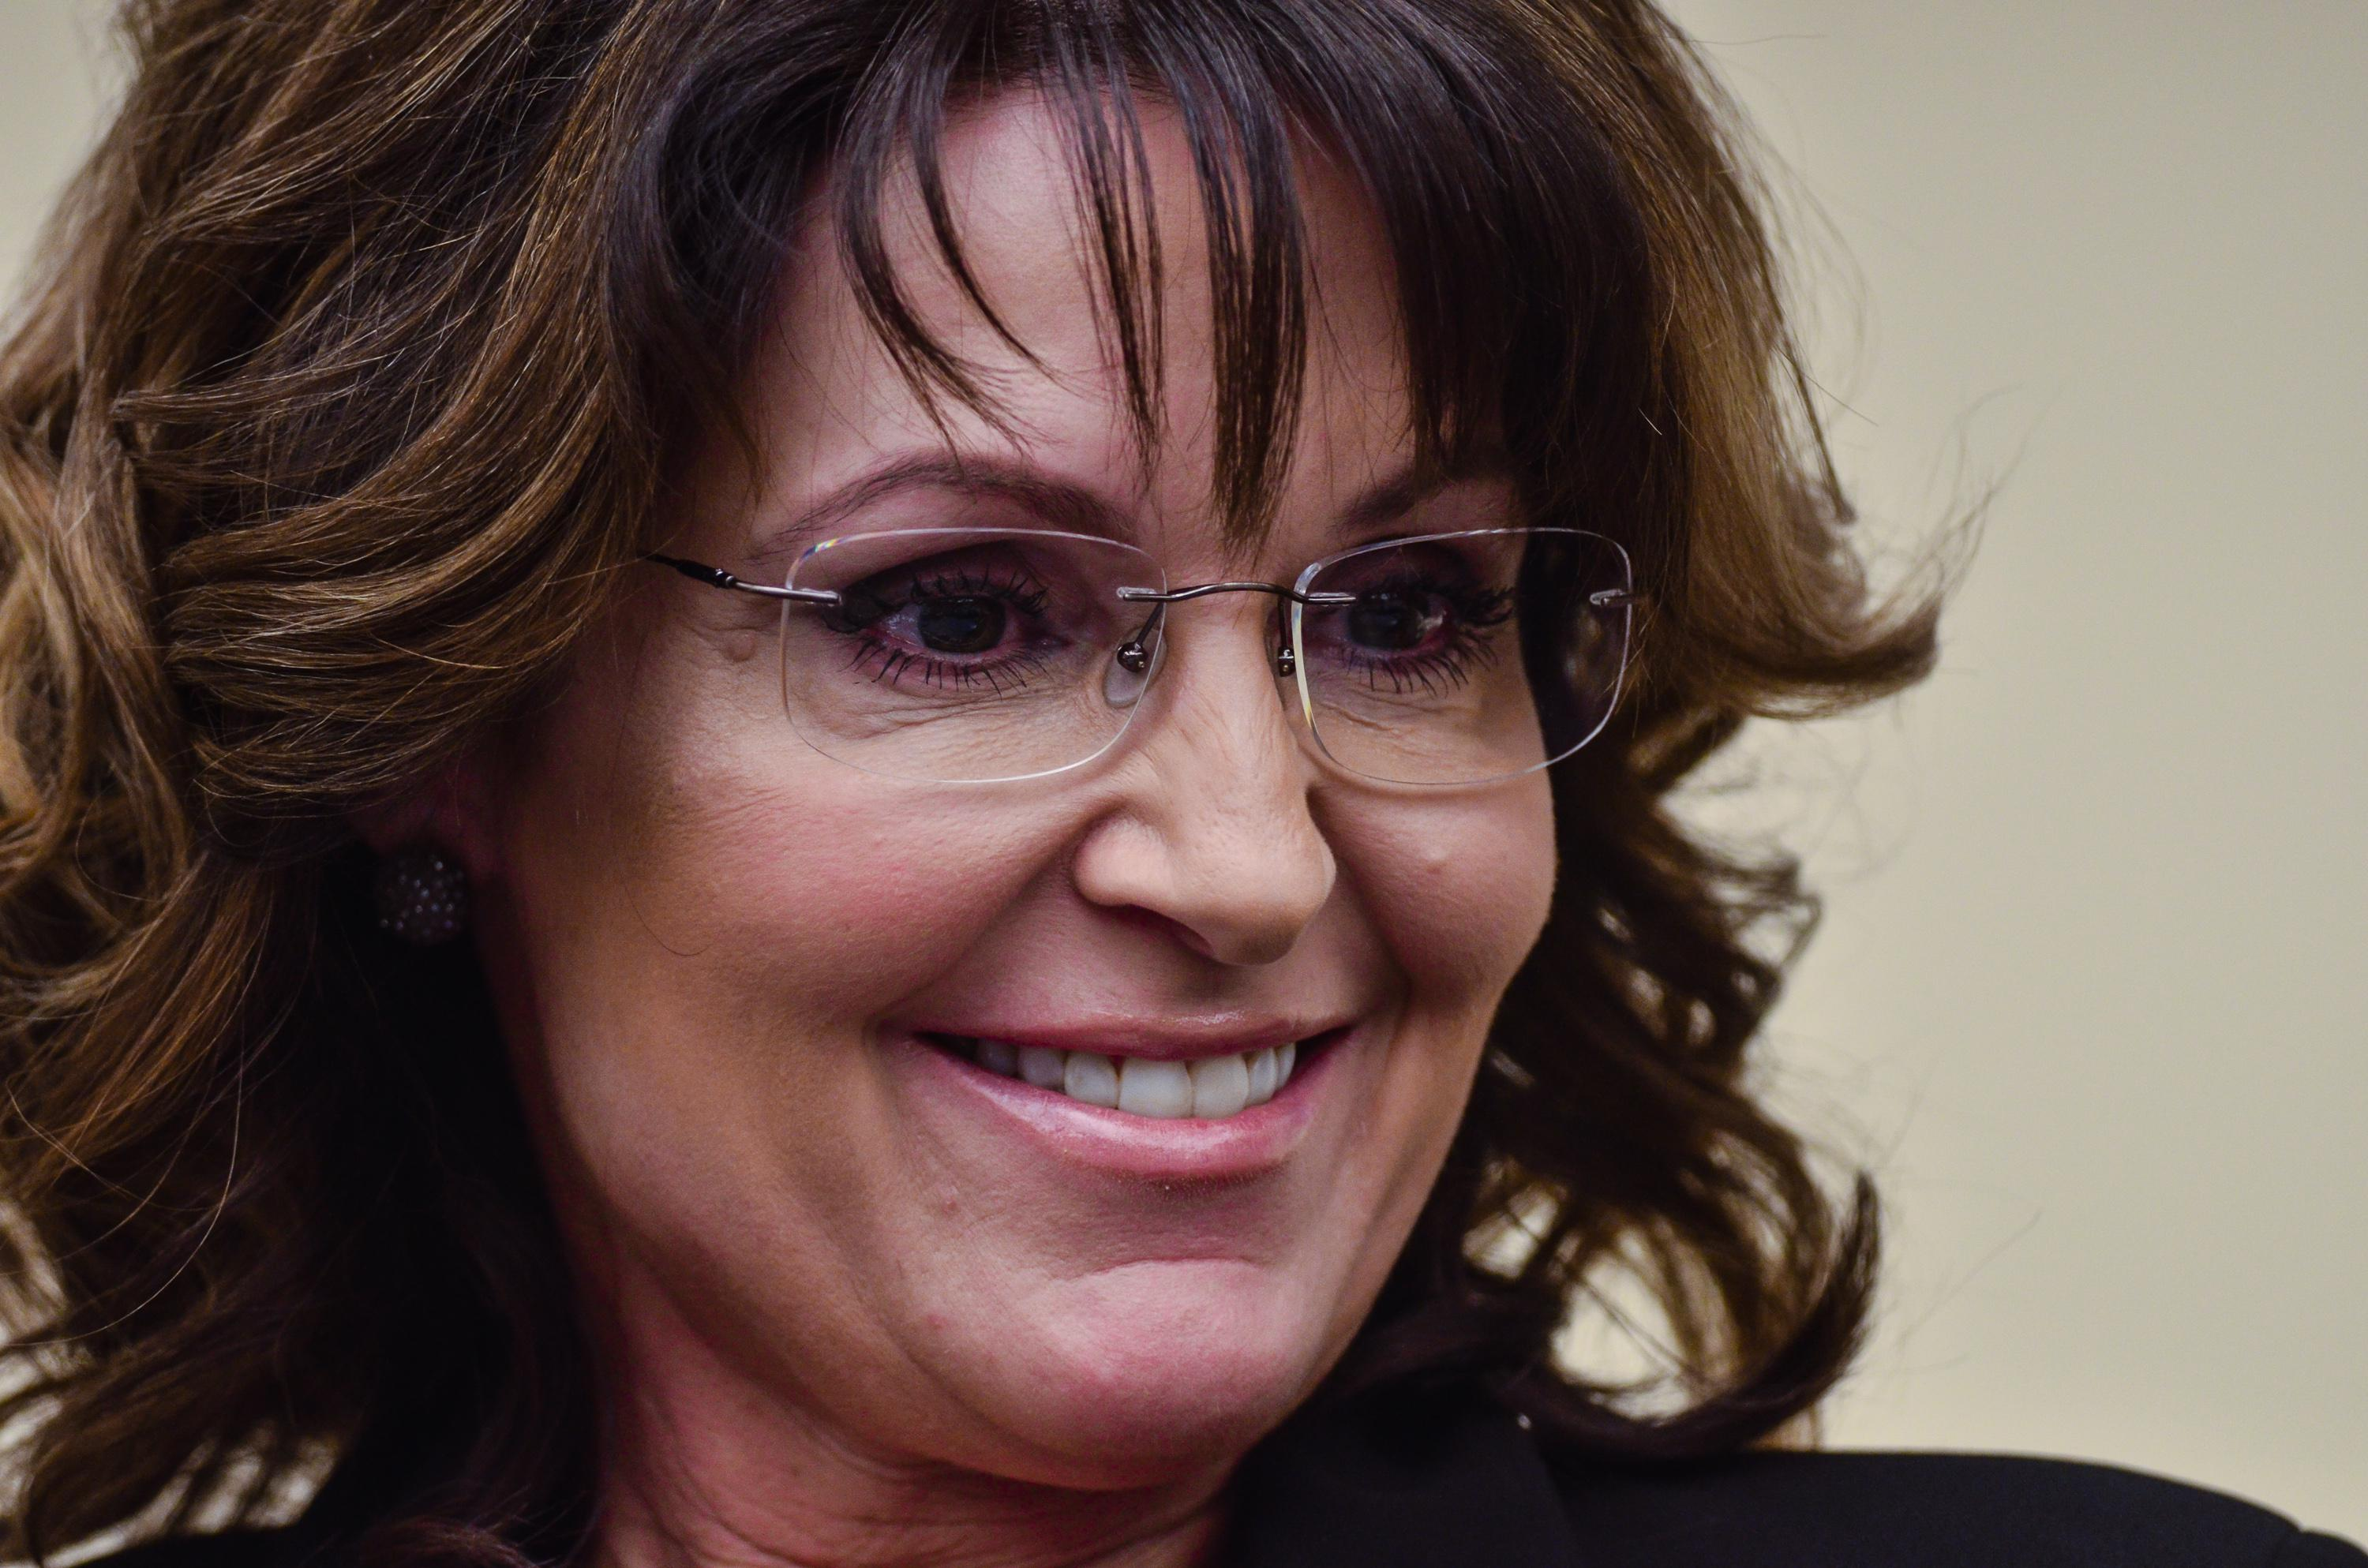 Sarah Palin in close-up.